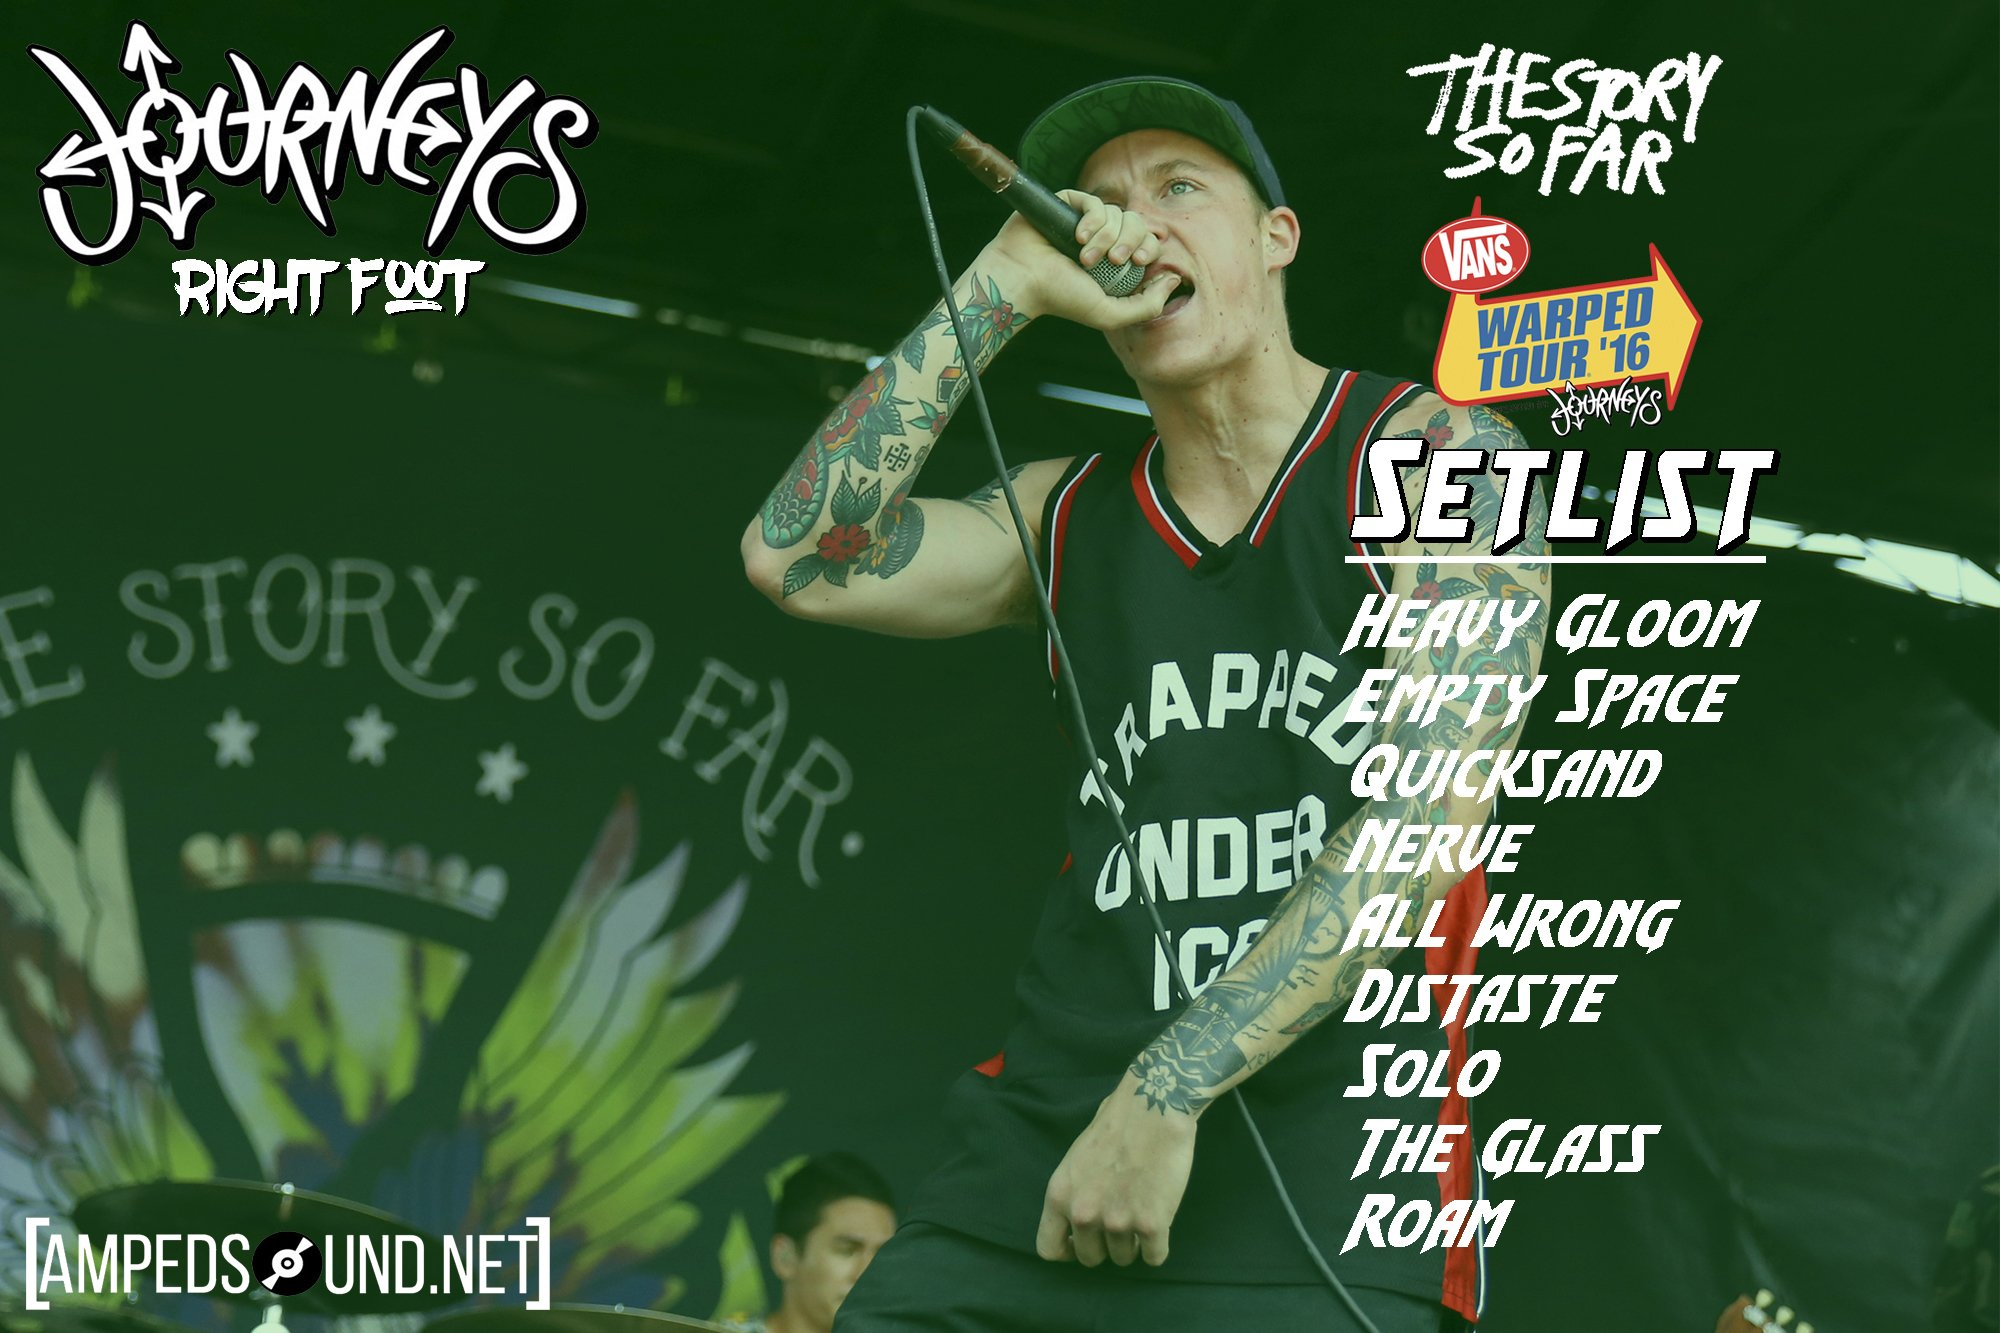 Yo Check #TheStorySoFar's #WarpedTour #Setlist #AmpedWarped #TSSF @thestorysofarca https://t.co/3vsRYMBwjv